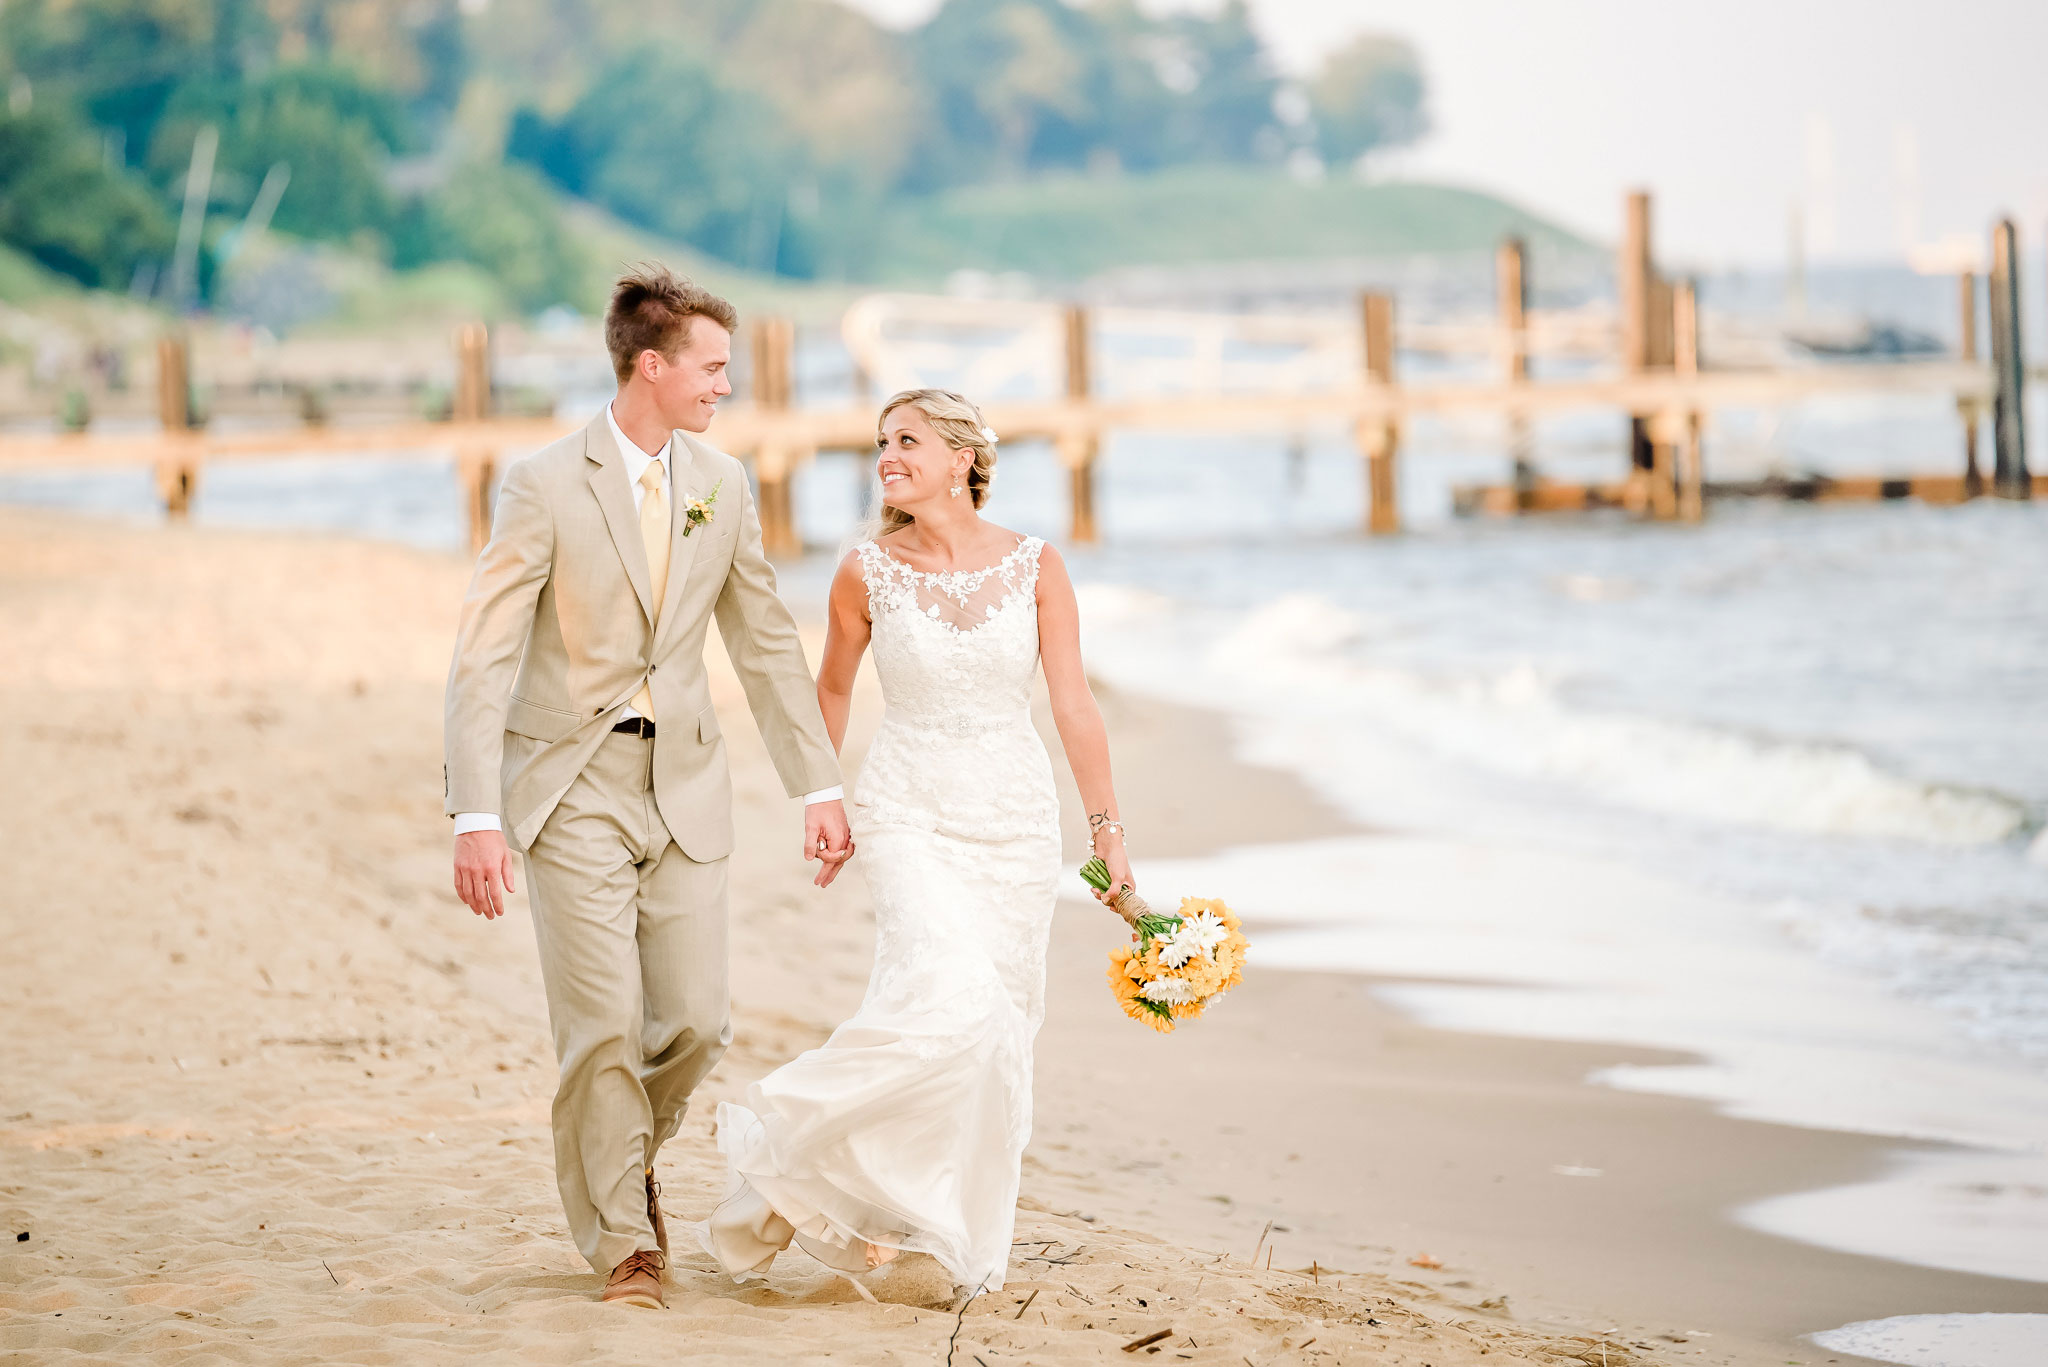 Northern-VA-Engagement-Photographer-Natural-Bright-Light-Chesapeake-Bay-Foundation-Merrill-Center-Wedding.jpg